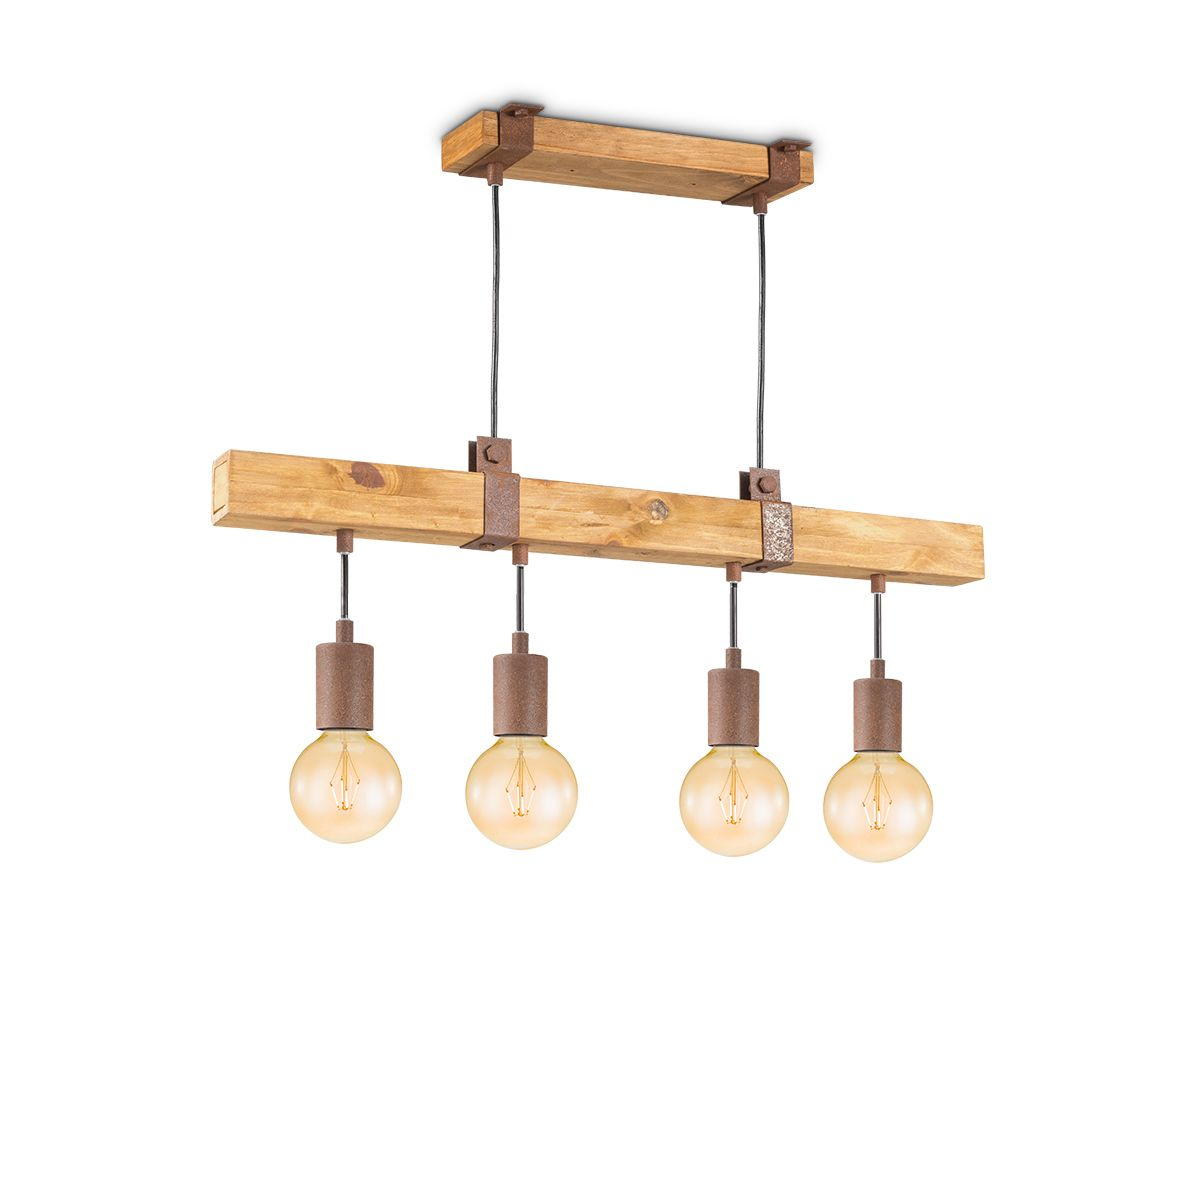 Home sweet home hanglamp Denton 4L - hout - roest